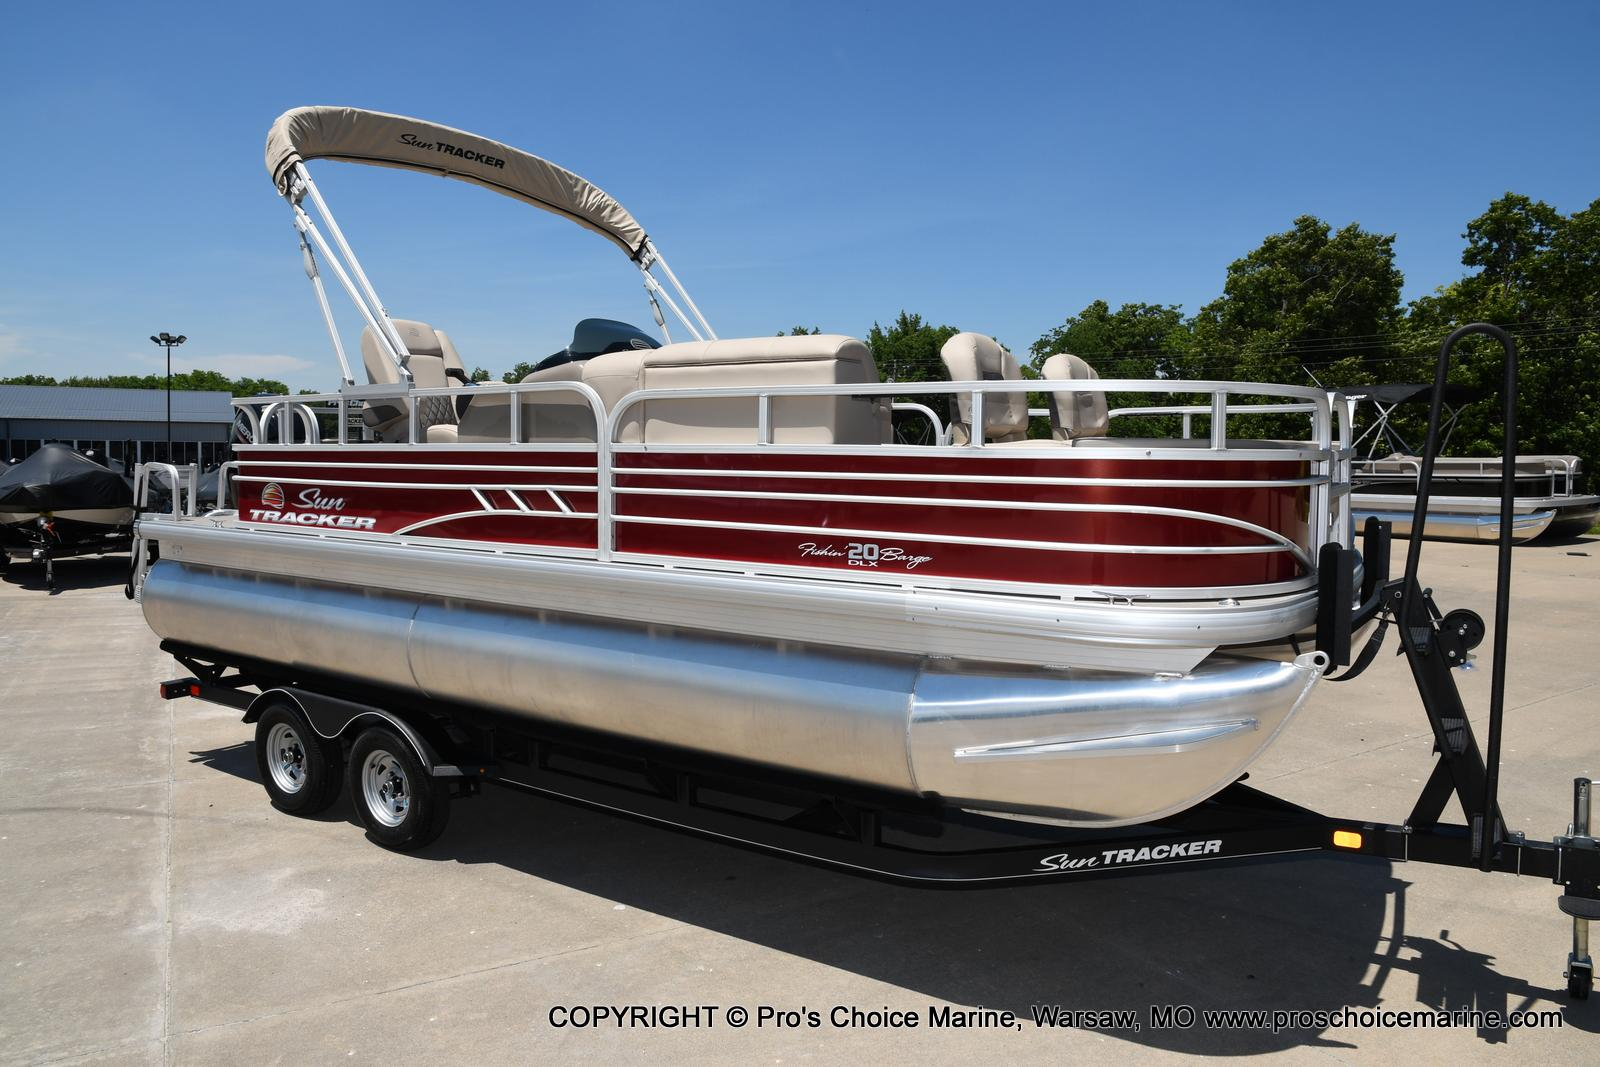 2021 Sun Tracker boat for sale, model of the boat is Fishin' Barge 20 DLX & Image # 1 of 50